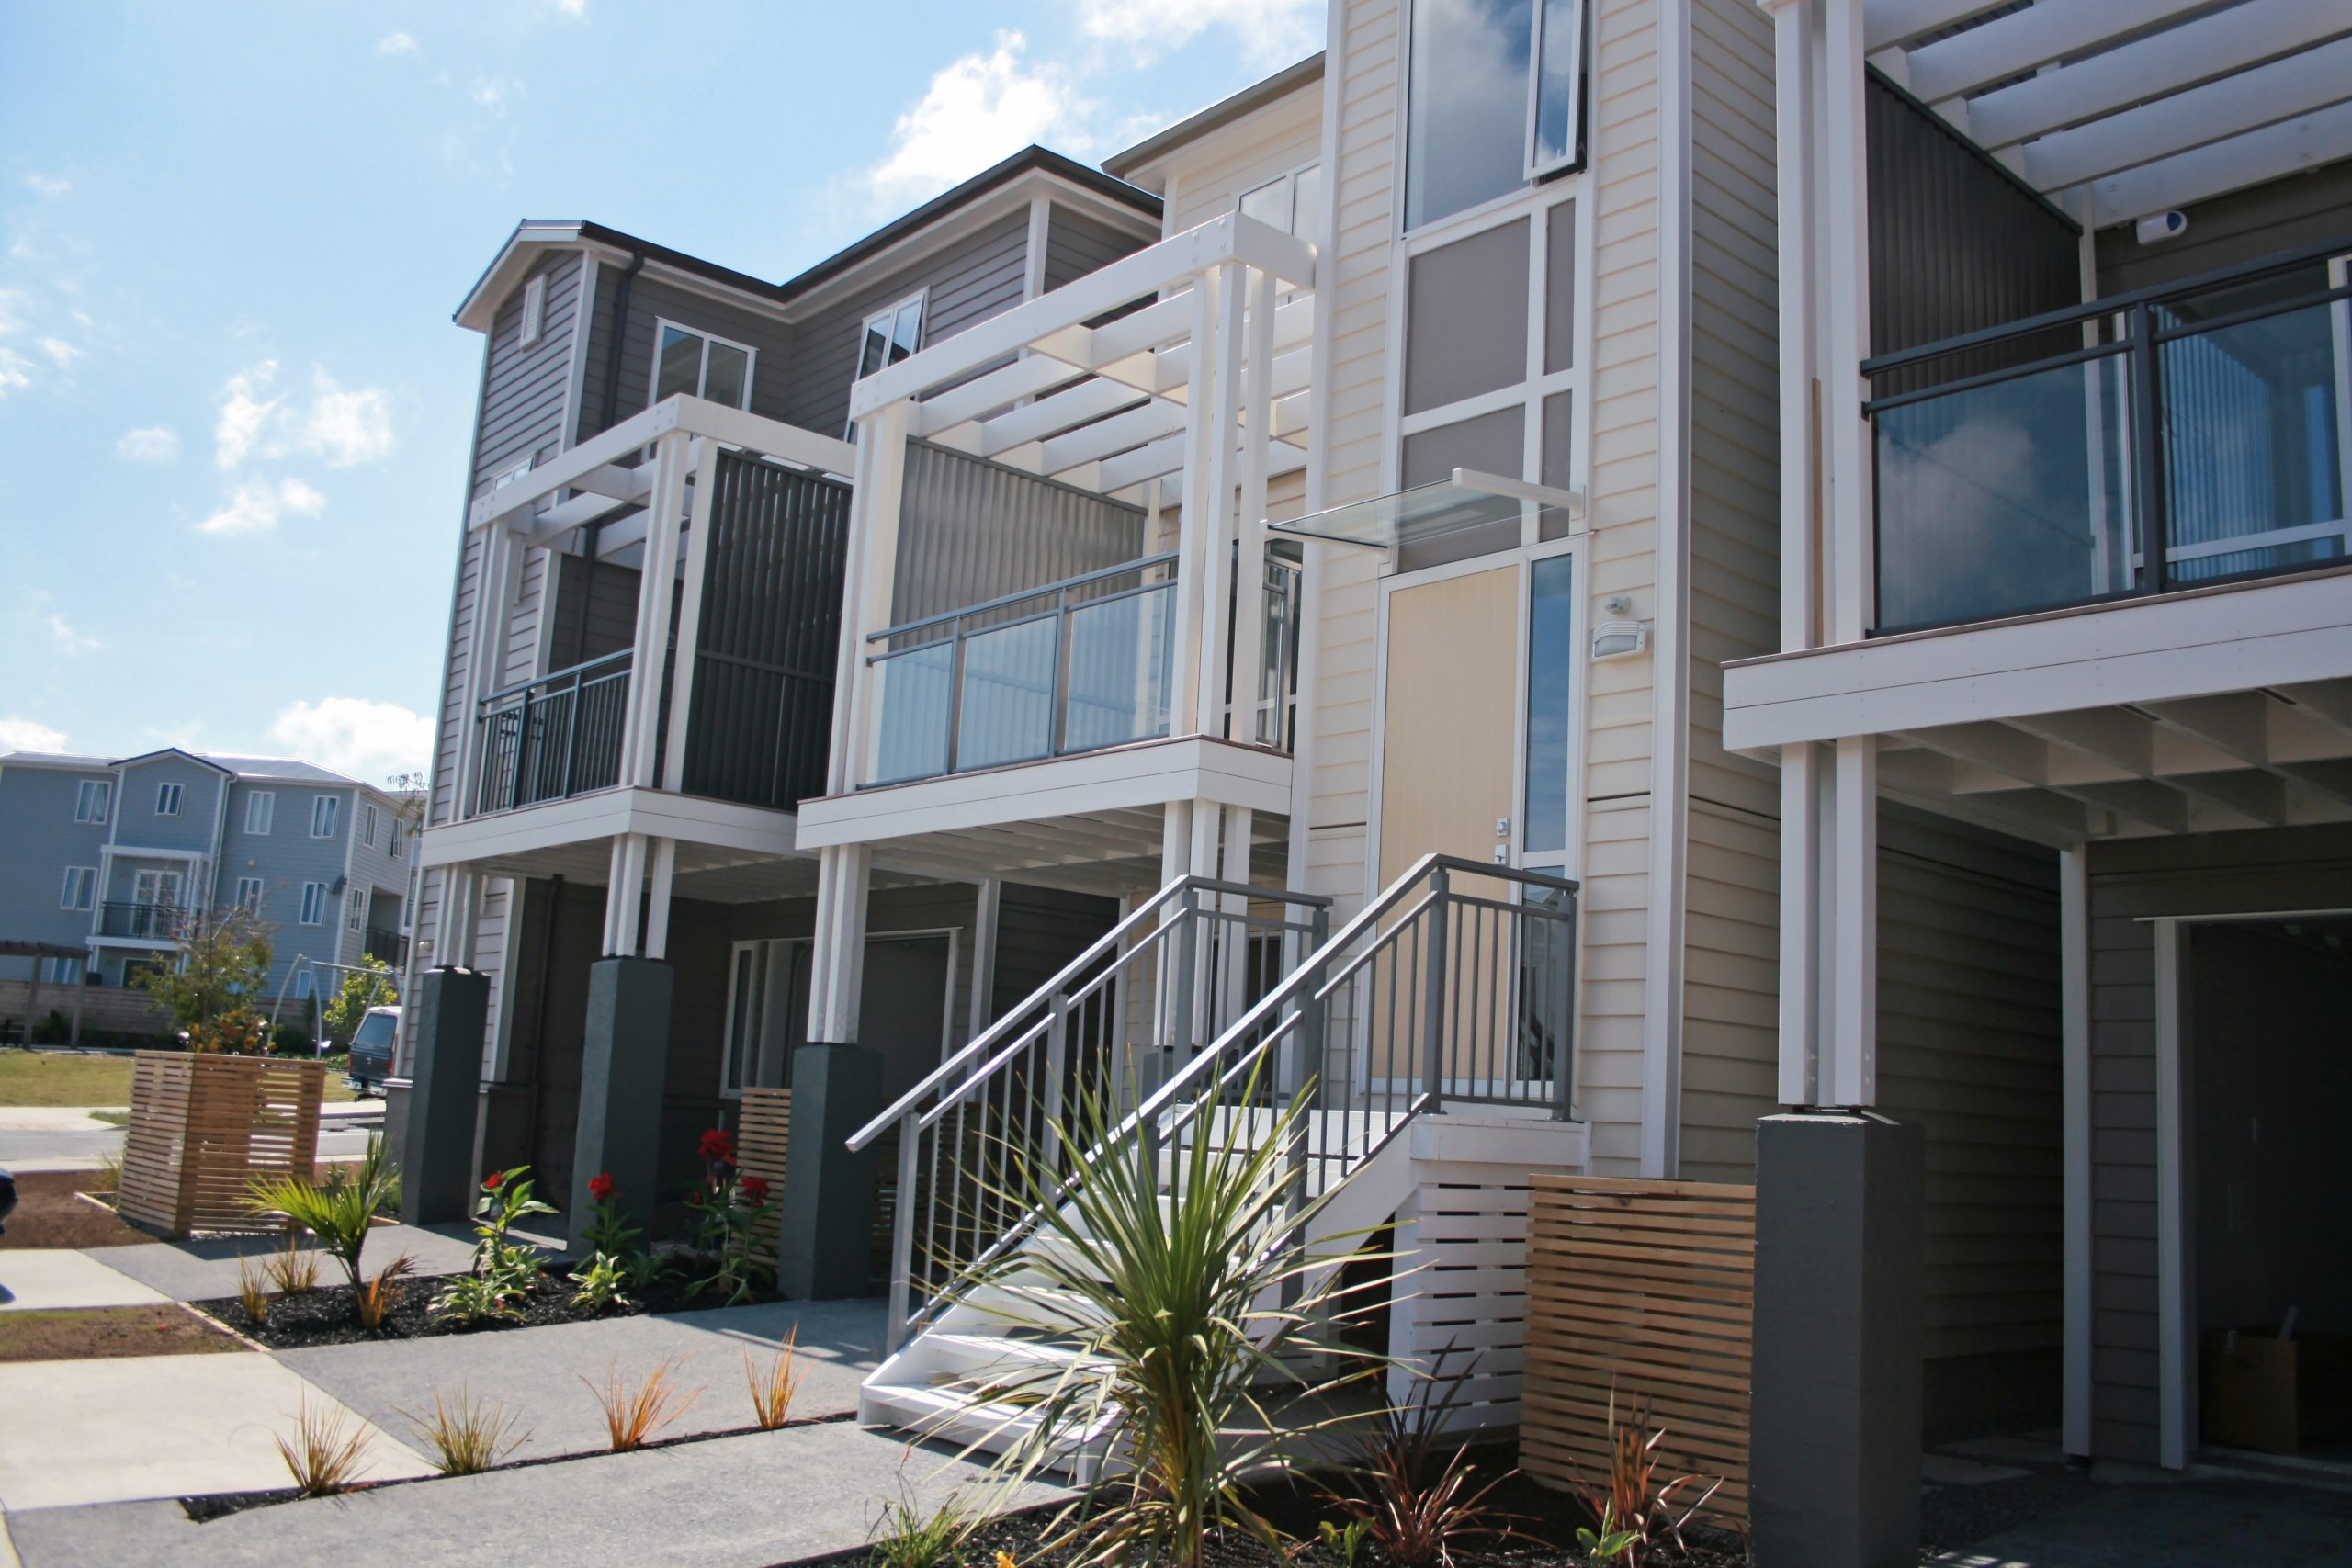 Finished homes with the different balustrades on the apartment, building, condominium, elevation, facade, home, house, mixed use, neighbourhood, property, real estate, residential area, siding, window, gray, black